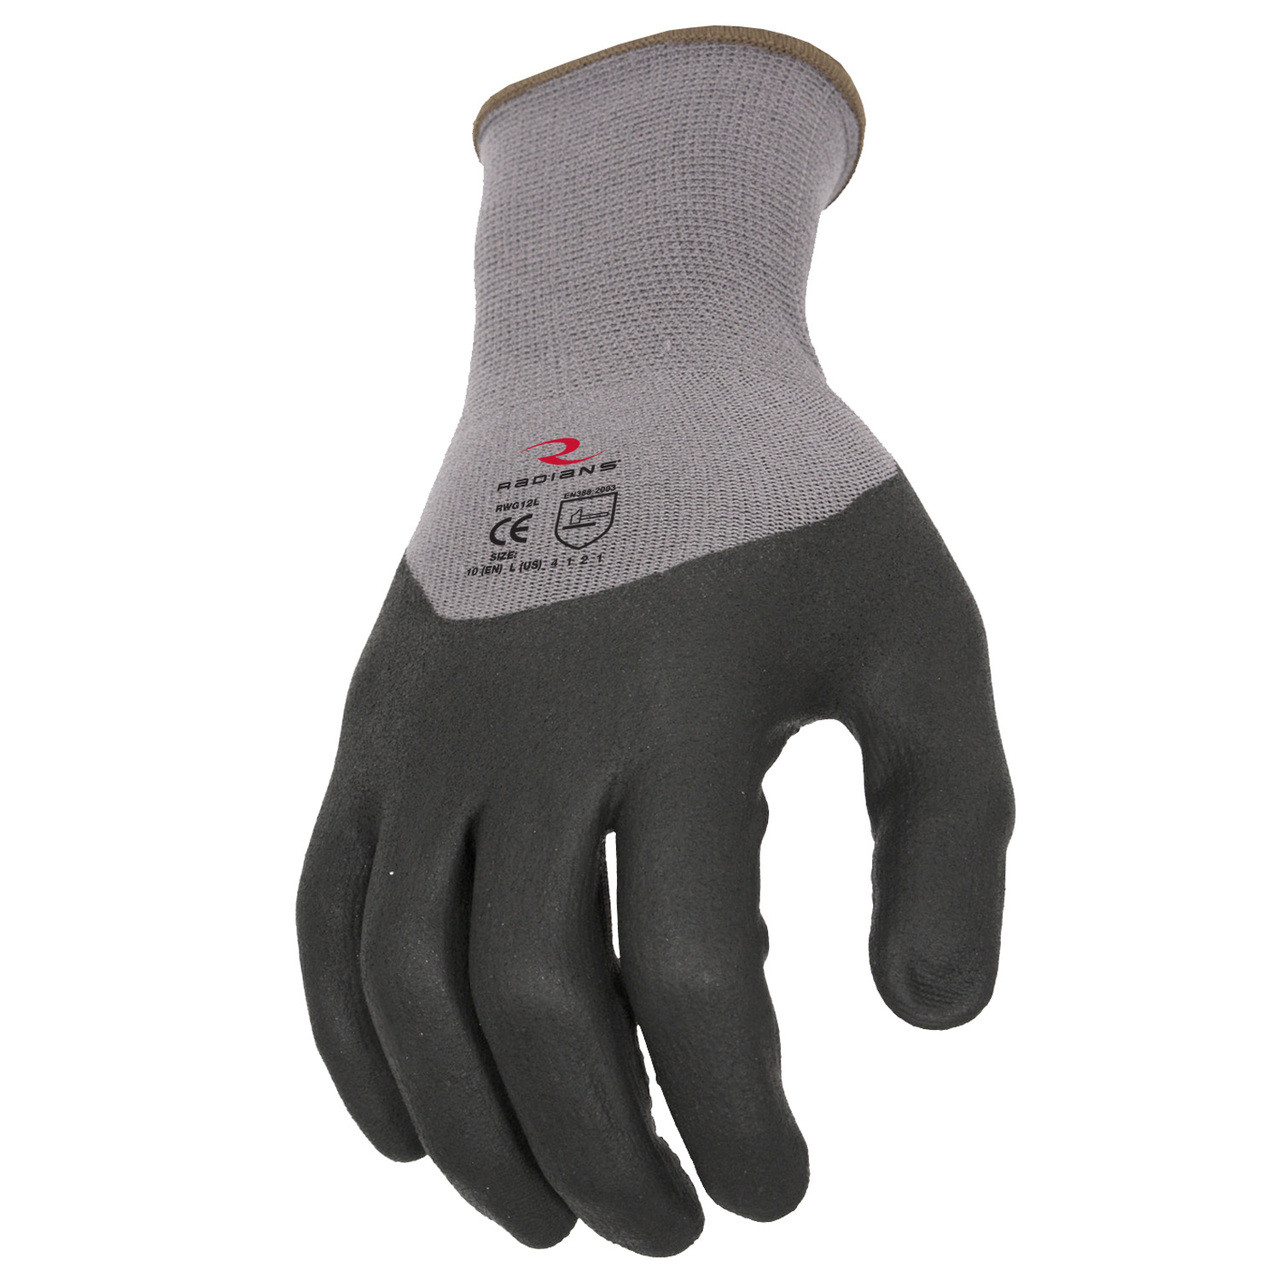 3/4 Foam Dipped Dotted Nitrile Glove